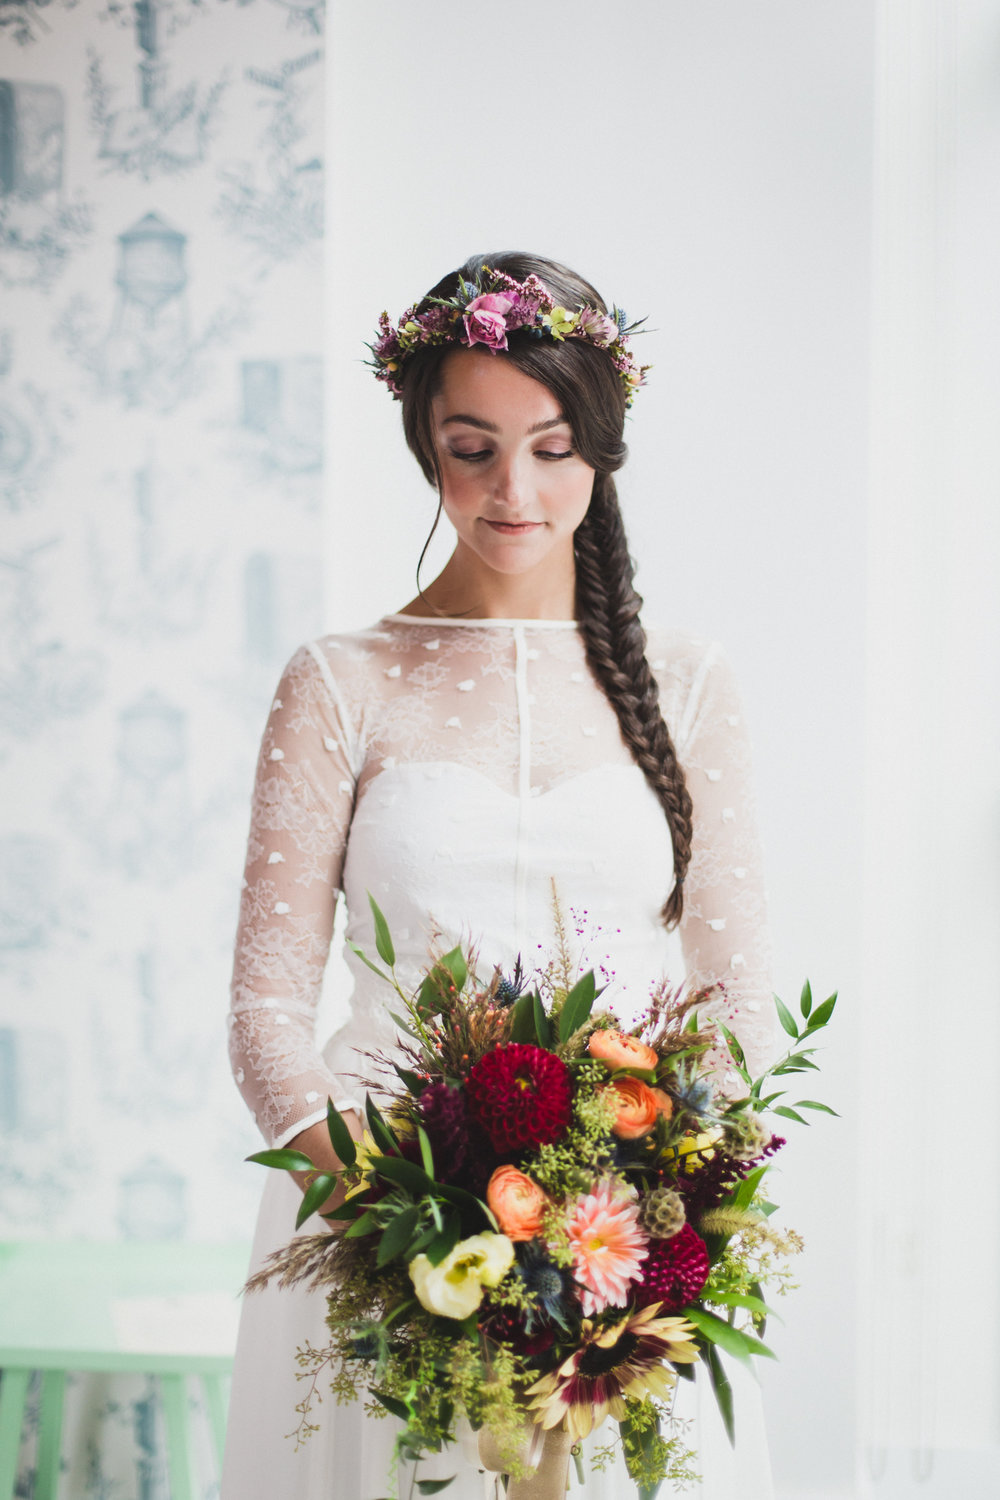 NJ Wedding, Fall Bridal Bouquet, Hair Flowers, Elvira Kaviste Photography